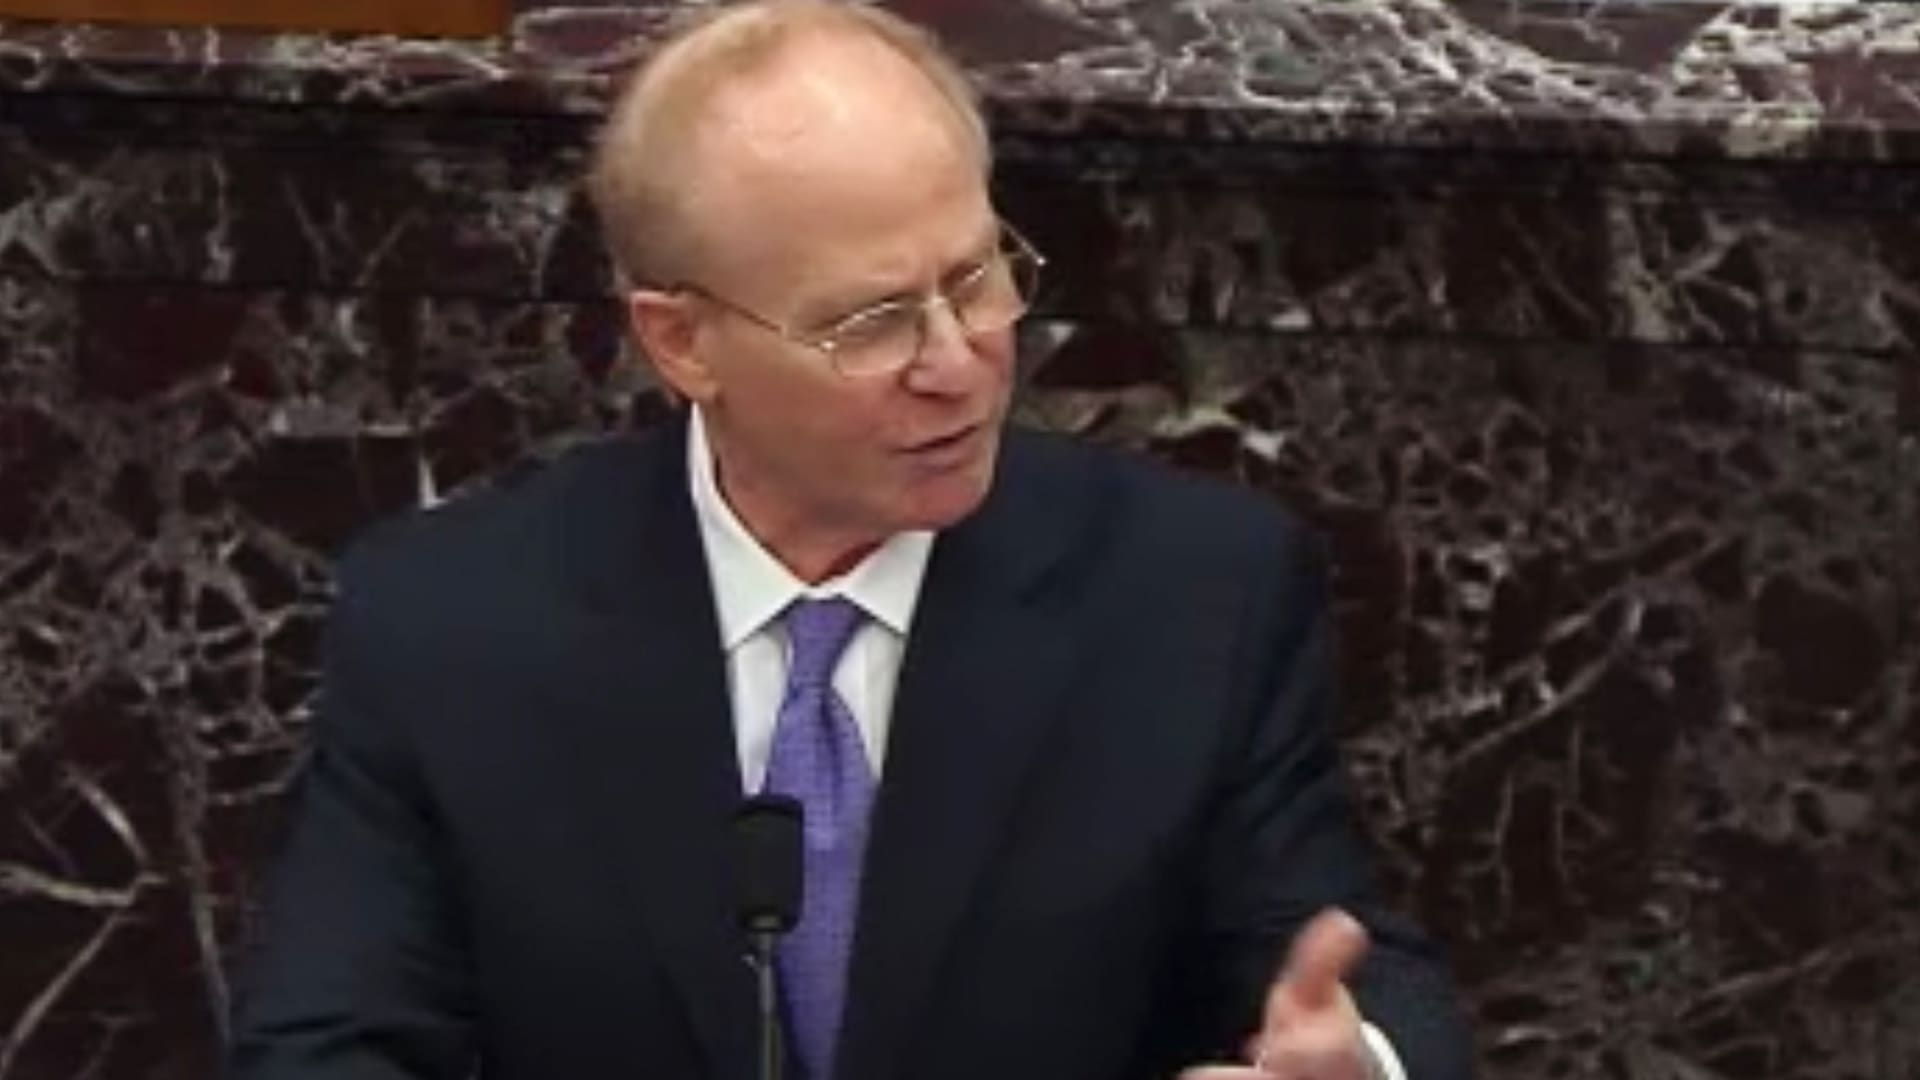 David Schoen, defense attorney for Donald Trump, speaks in the Senate Chamber in a video screenshot in Washington, D.C., on Friday, Feb. 12, 2021.